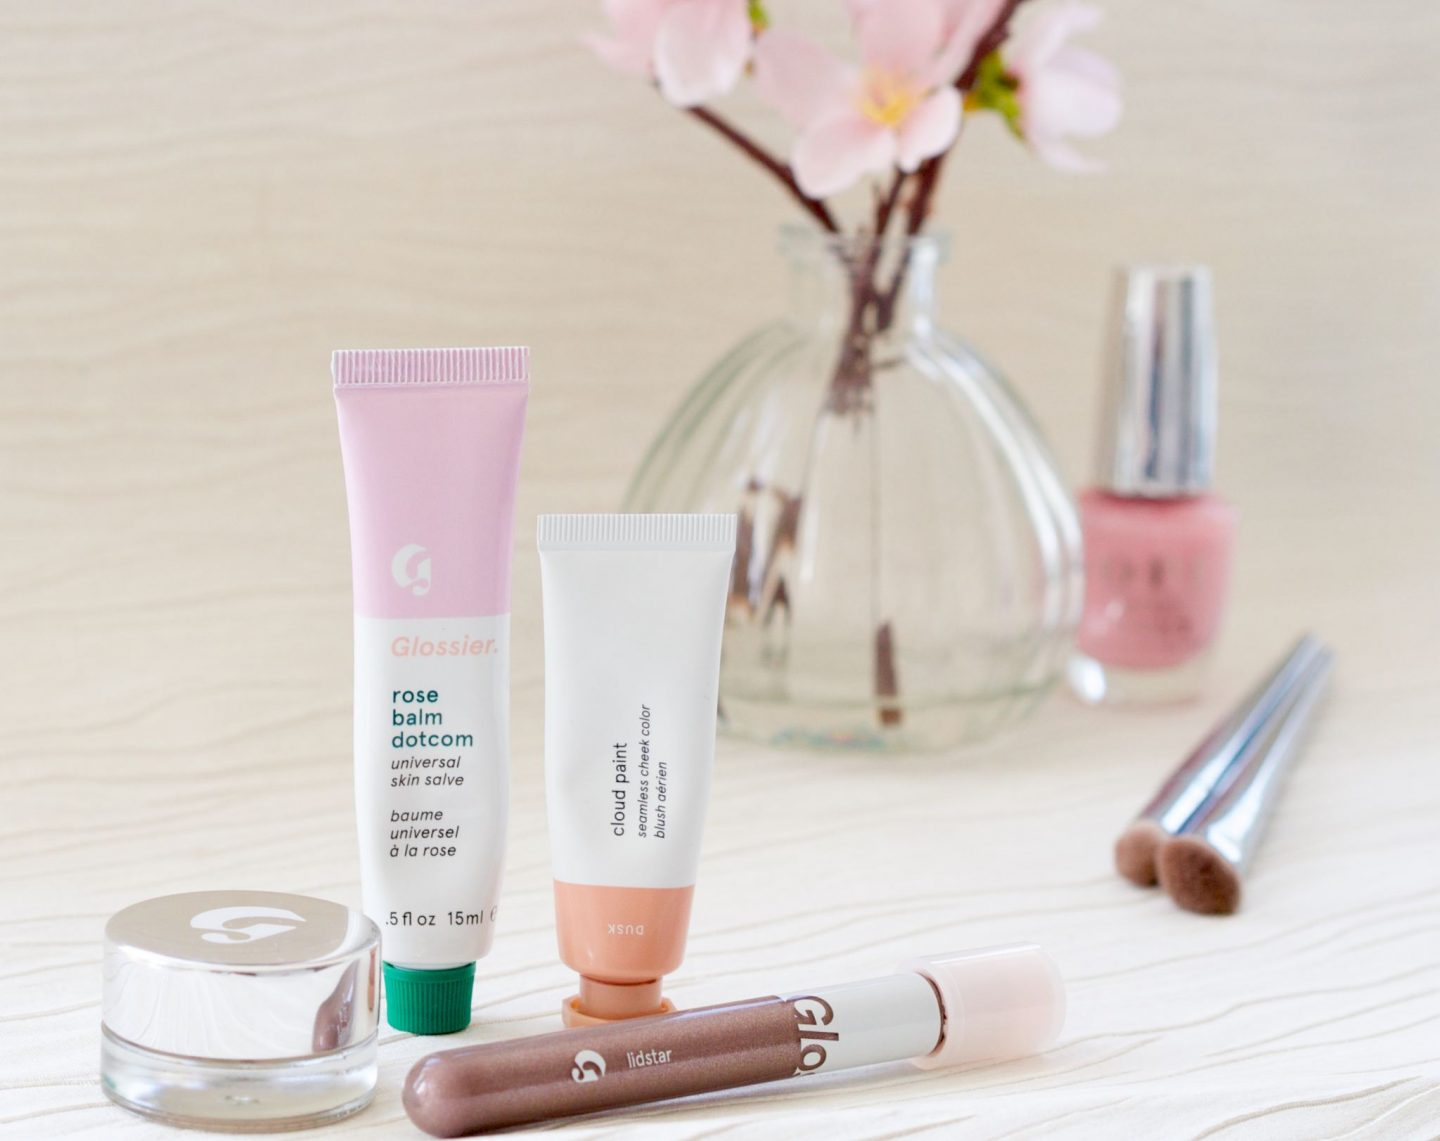 My Mini Glossier Haul – The Good and The Bad